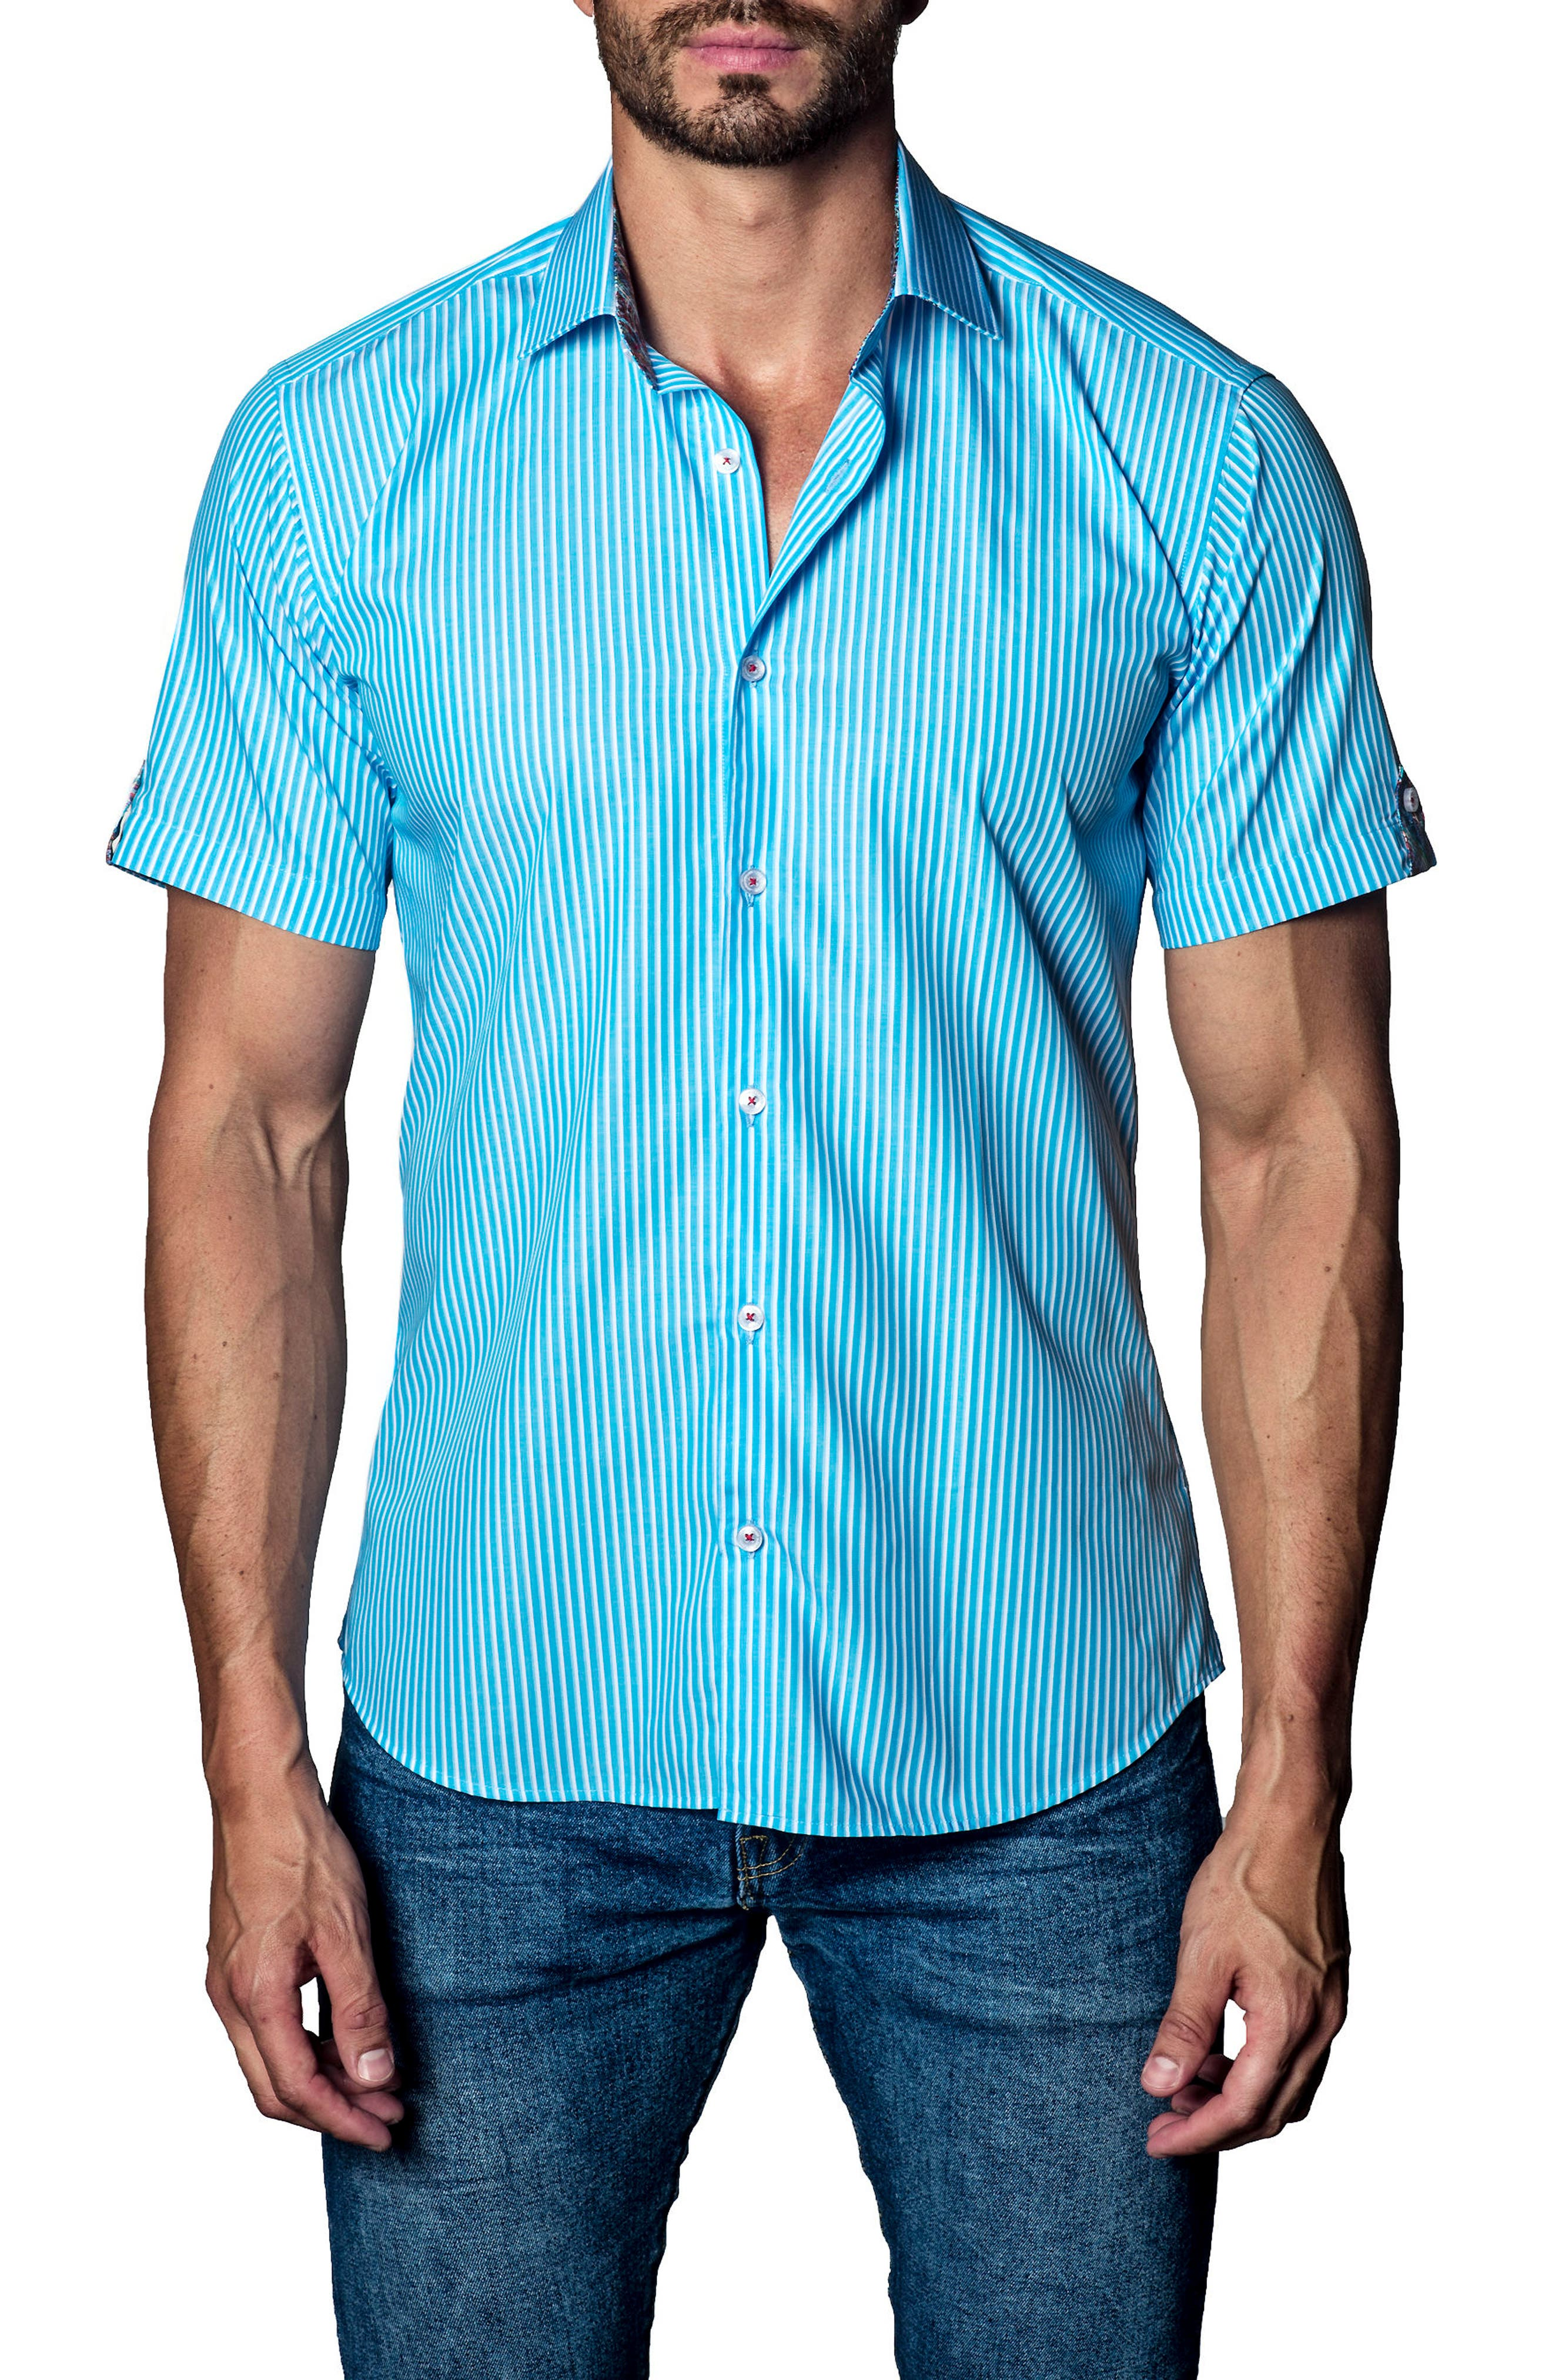 Stripe Sport Shirt,                         Main,                         color, Blue / White Stripe